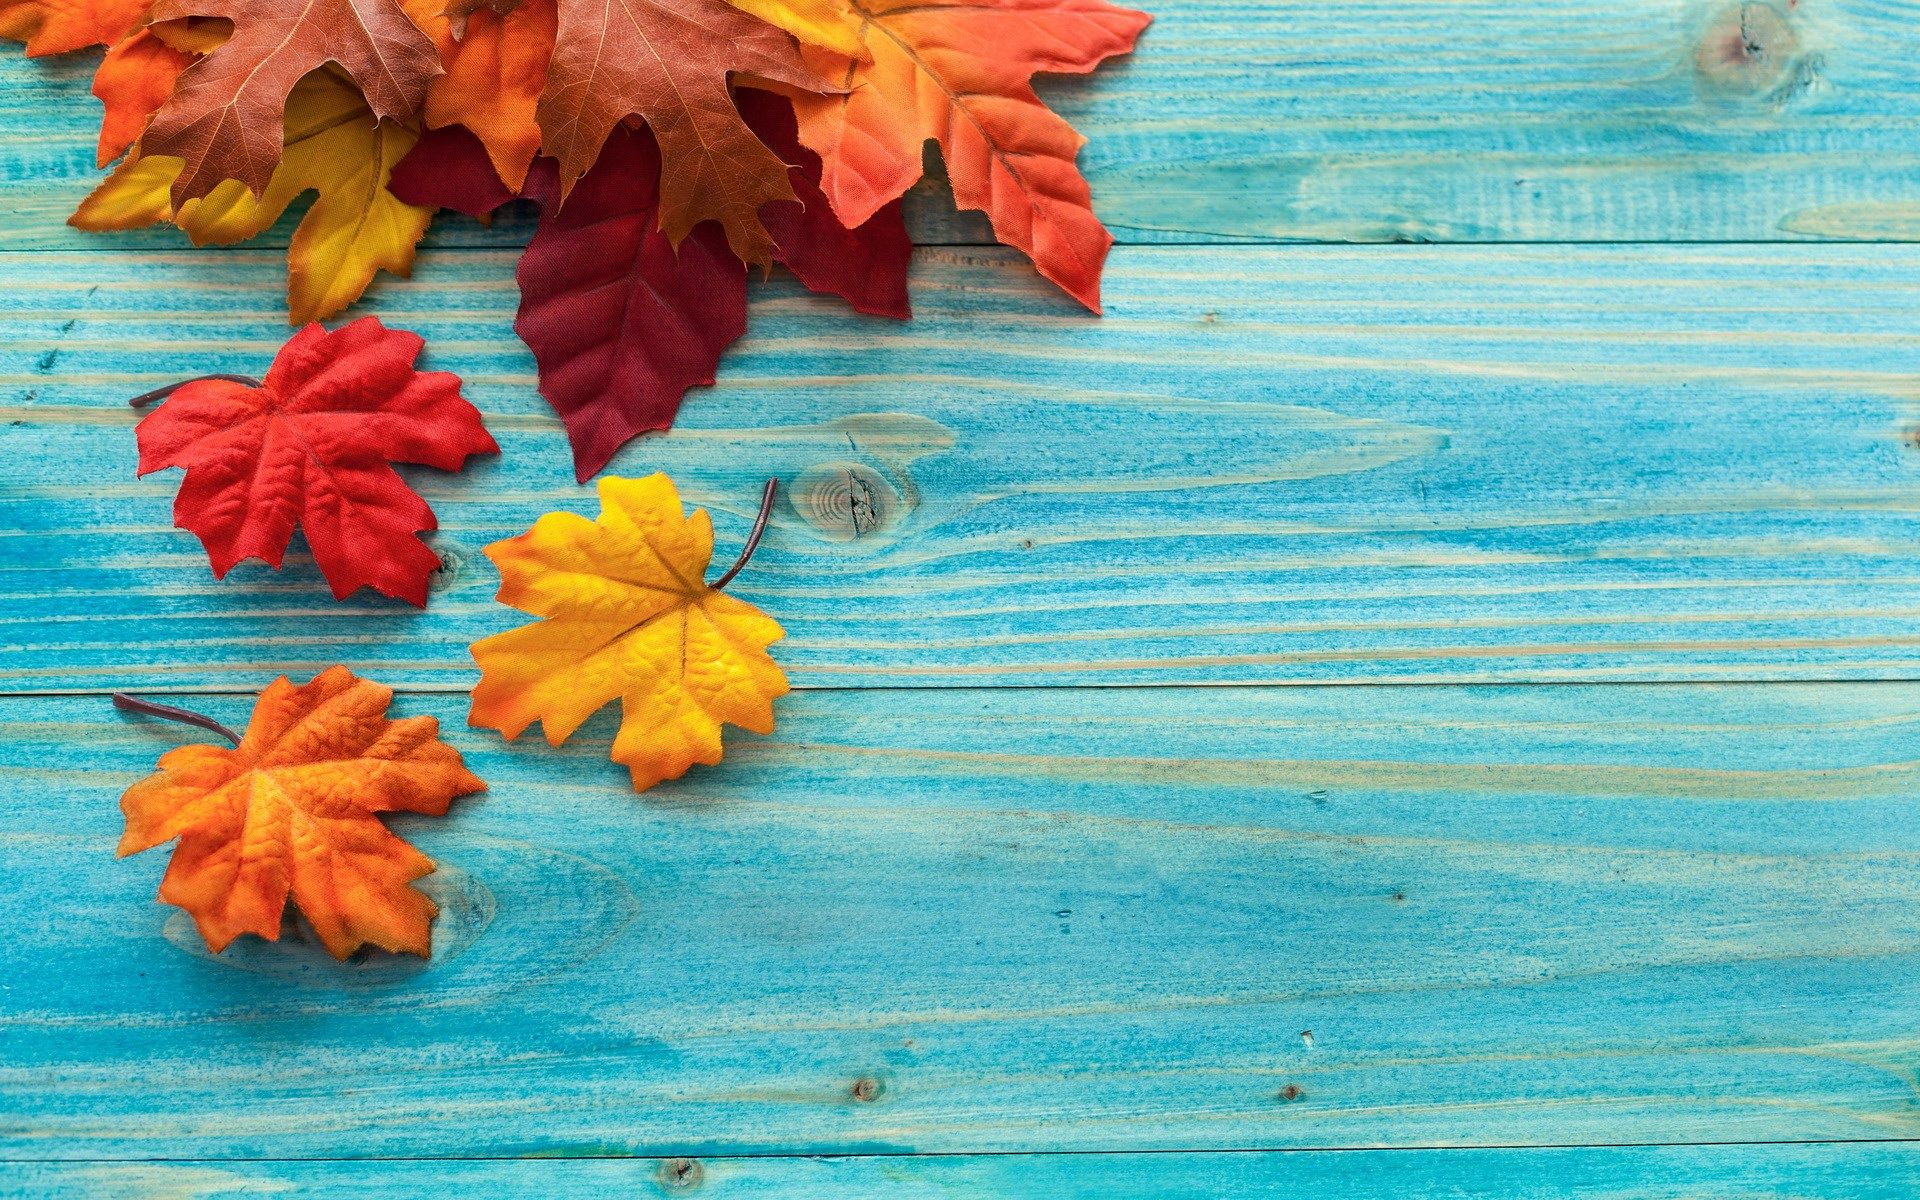 Widescreen Backgrounds Fall Autumn Leaves Wallpaper Fall Wallpaper Desktop Wallpaper Fall